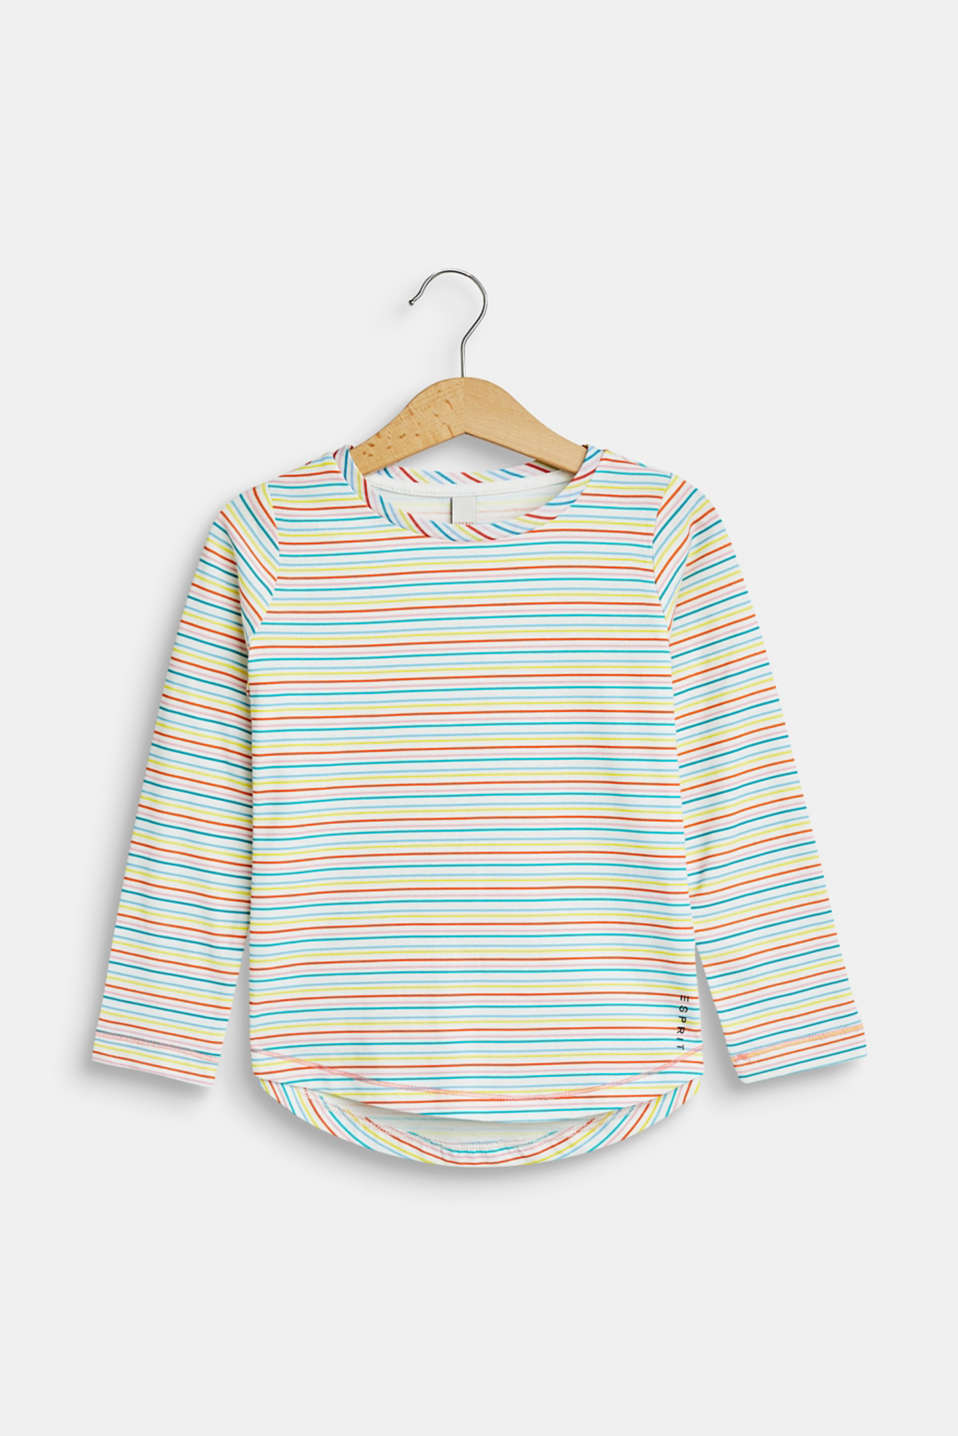 Esprit - Long sleeve top with colourful stripes, 100% cotton